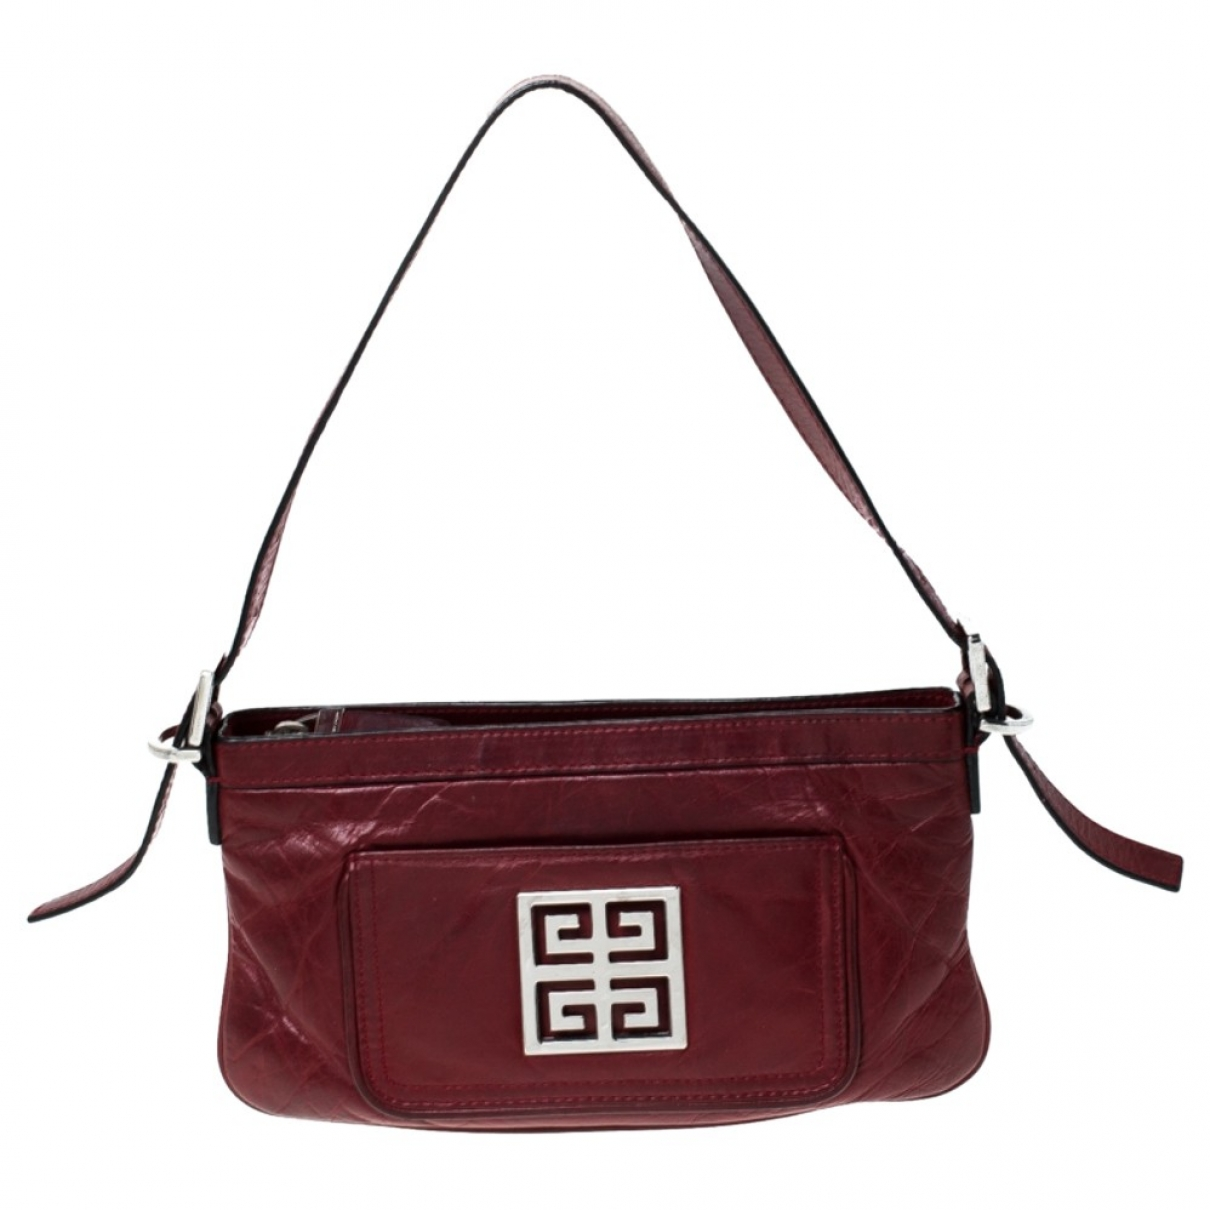 Givenchy \N Red Leather handbag for Women \N